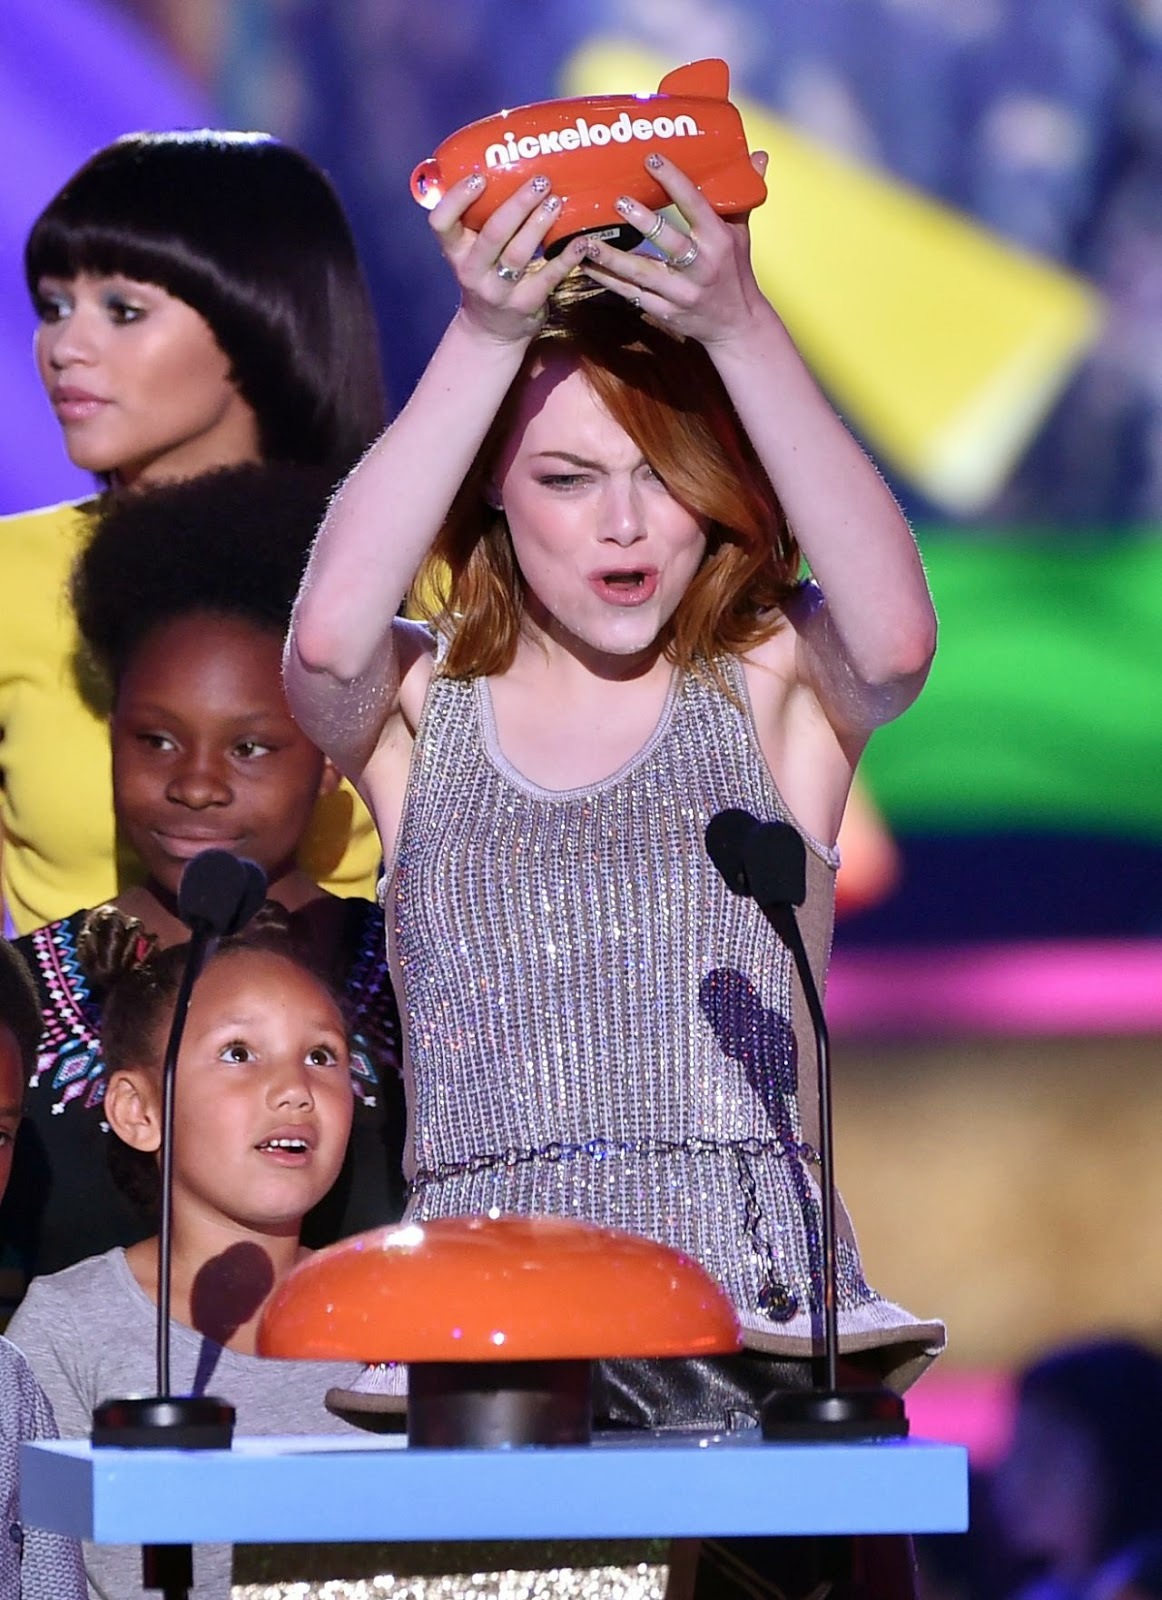 Emma Stone in a sequinned top and leather skirt at the 2015 Nickelodeon Kids' Choice Awards